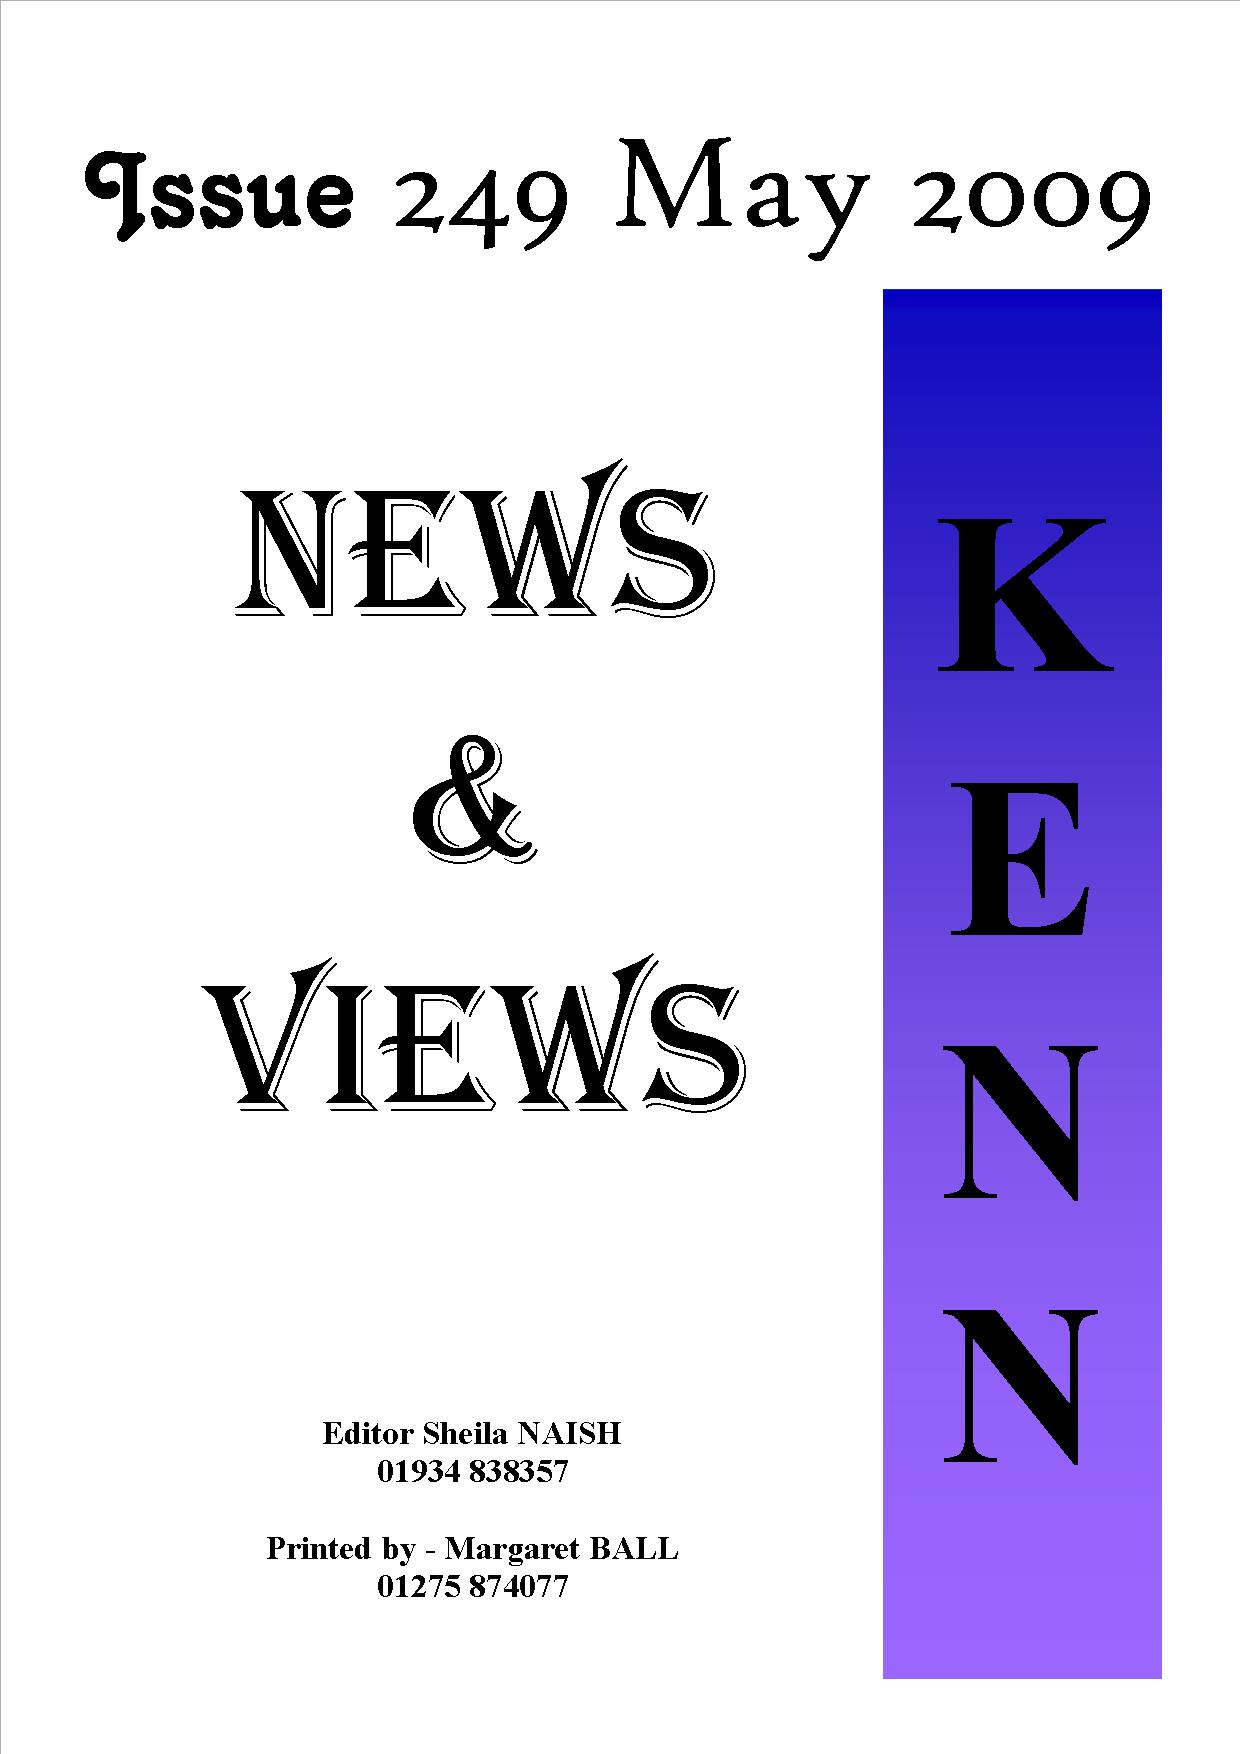 May 2009 cover